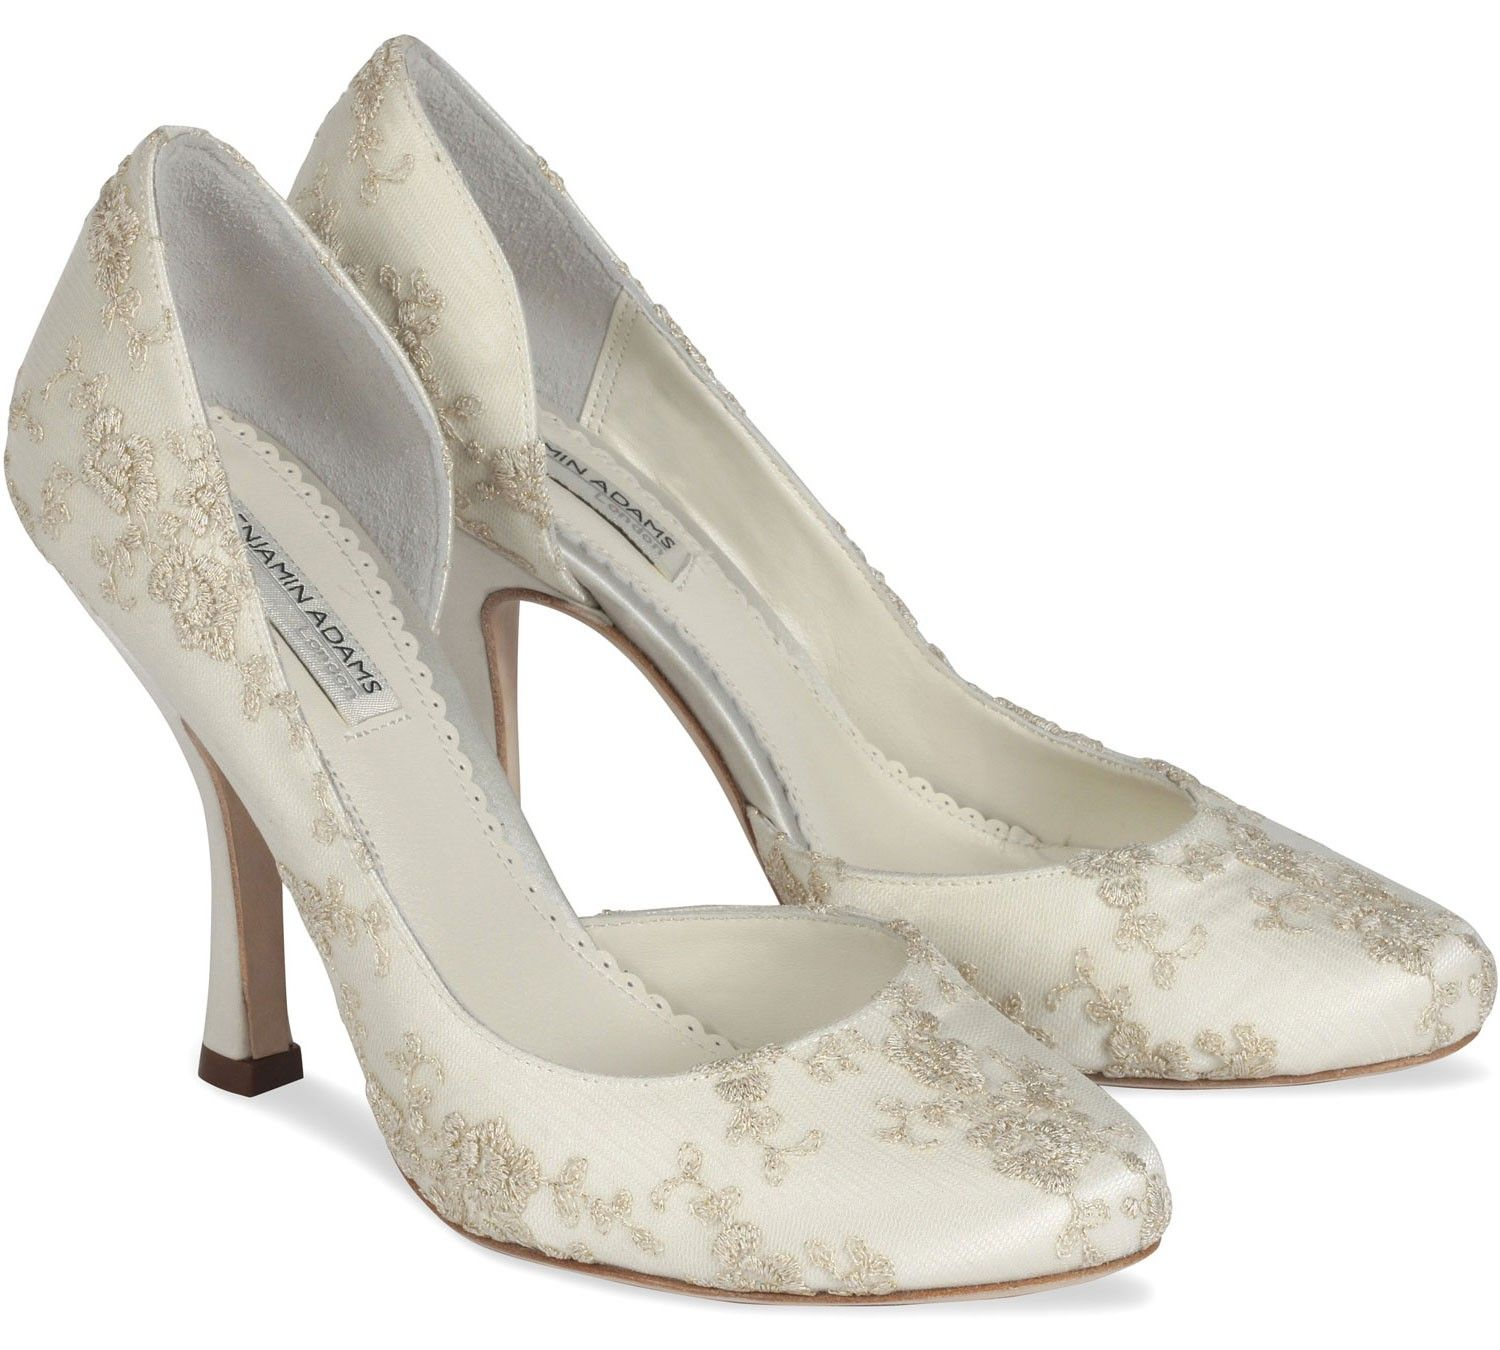 Ivory Benjamin Adams Elizabeth Bridal Shoes 21000 The Are A Beautifully Embroidered